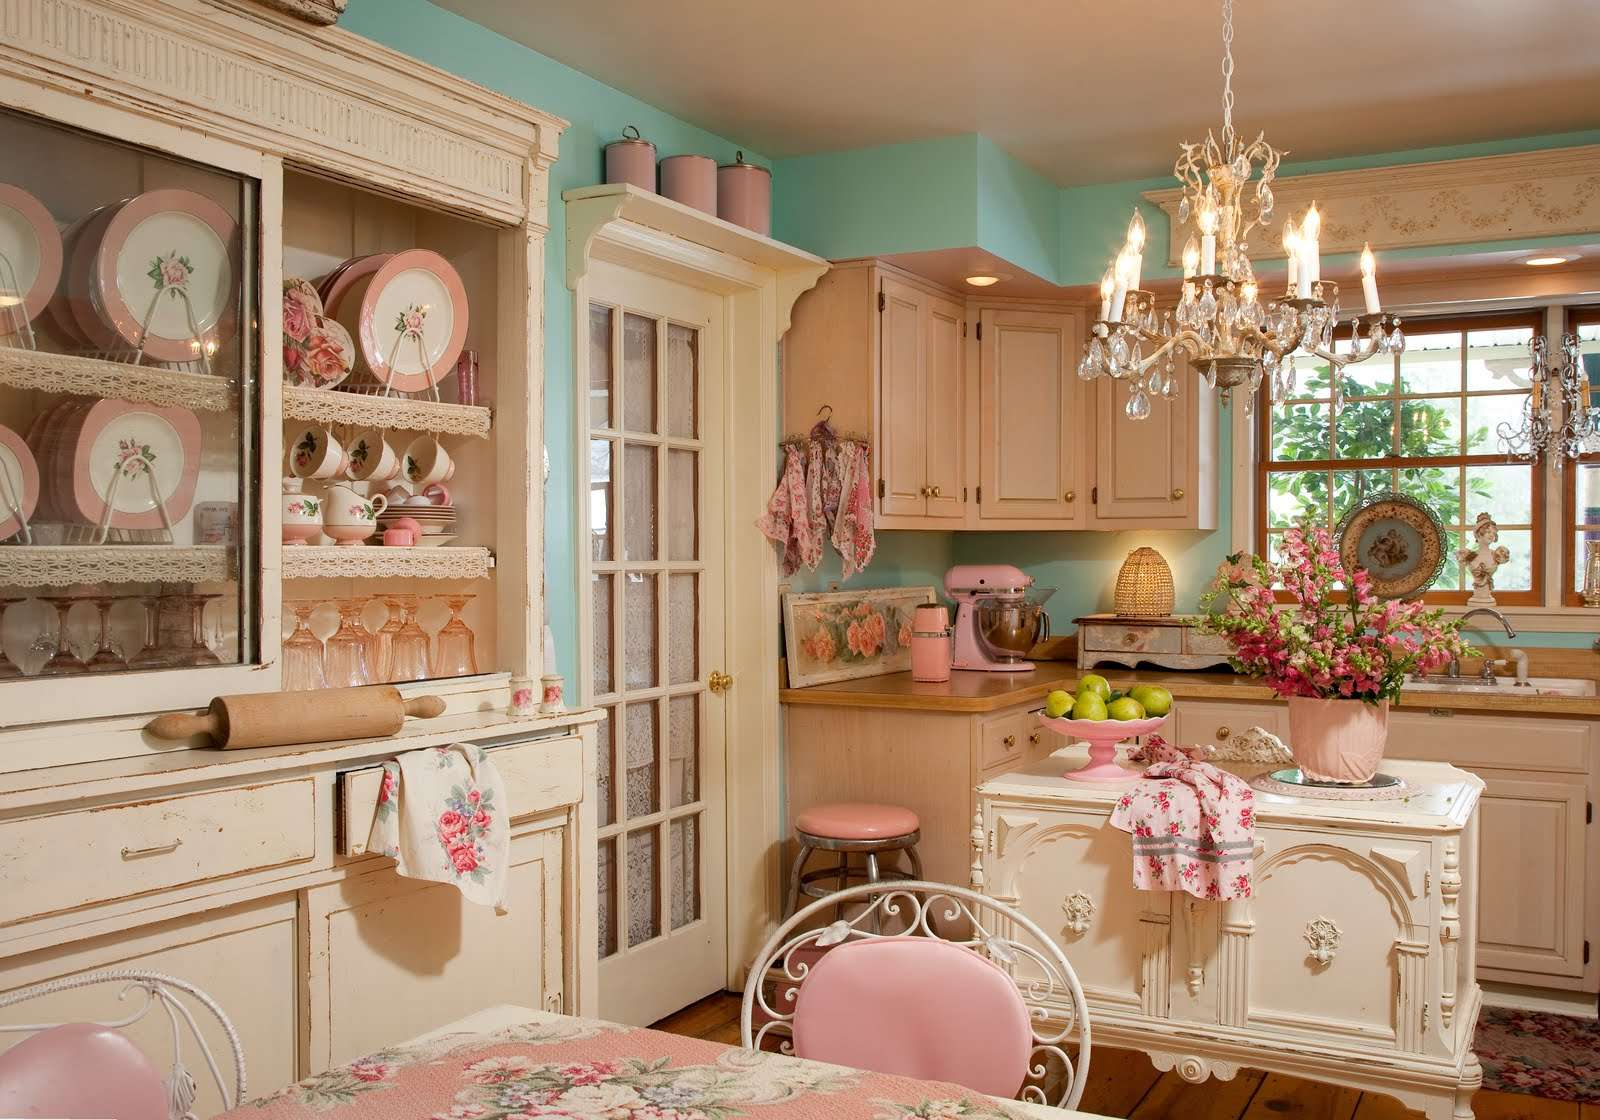 Design Featuring Variety Shabby Chic Country Kitchen Designs